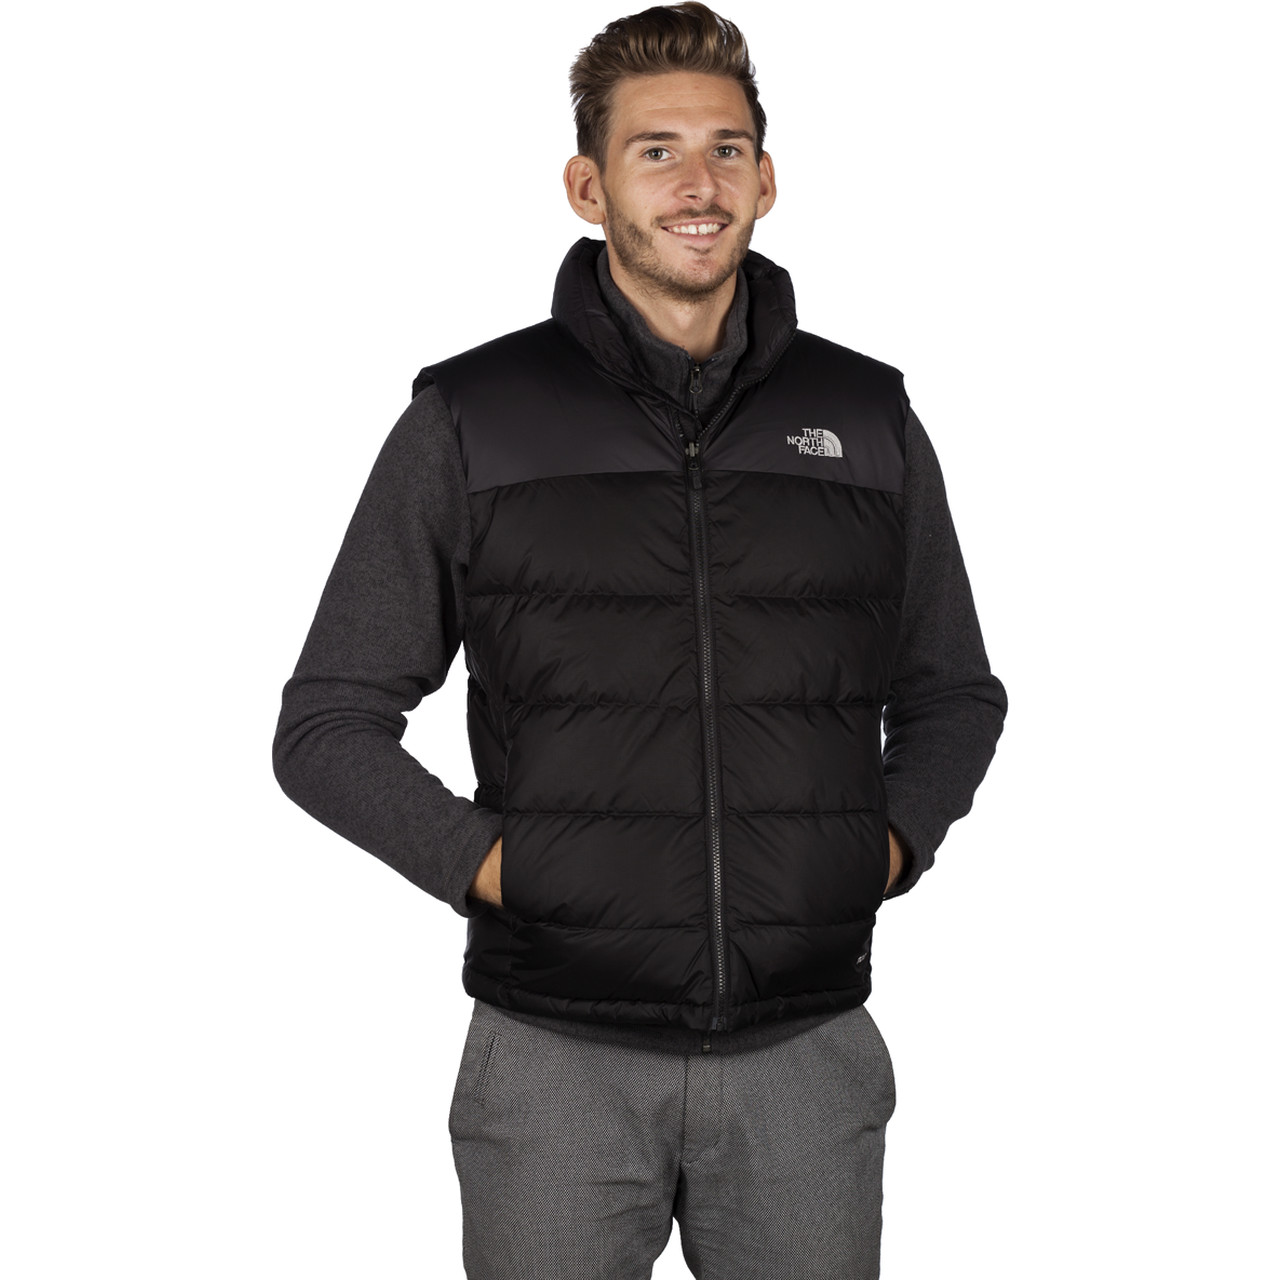 kamizelka the north face m nuptse 2 vest jk3 w sklepie. Black Bedroom Furniture Sets. Home Design Ideas